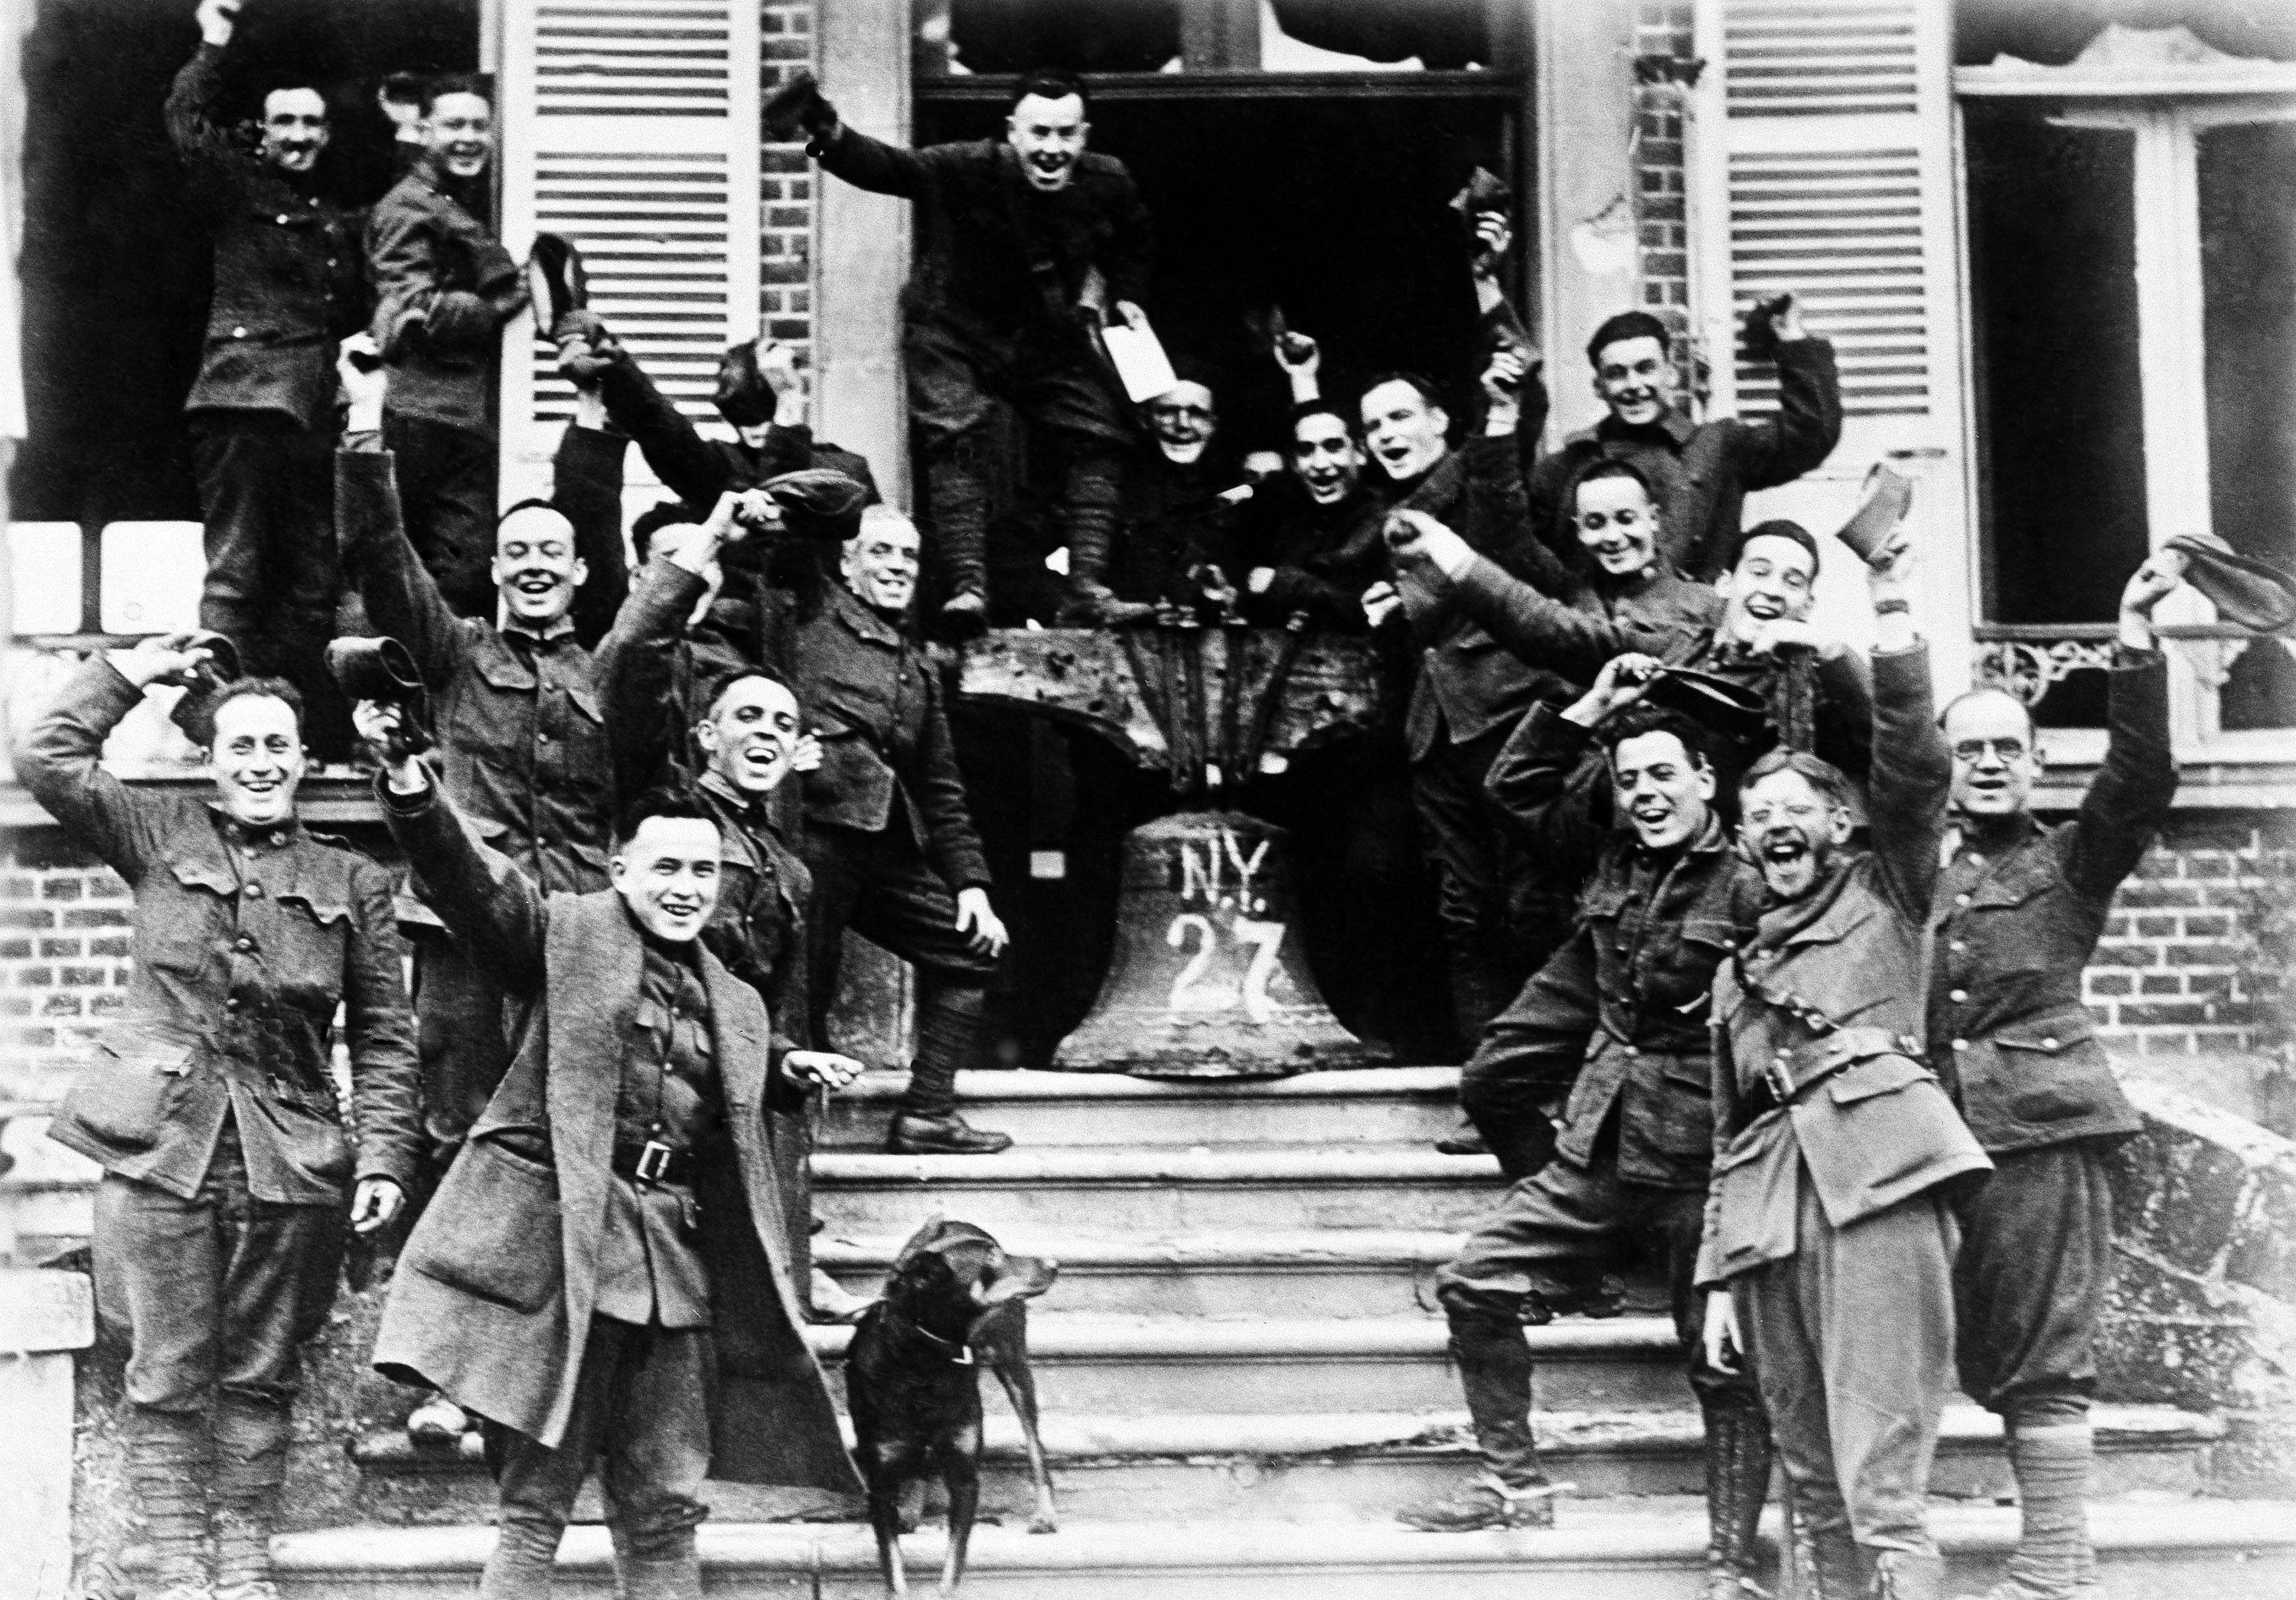 97 OF 100: In this November 1918 file photo, American soldiers from New York, who served on the frontline in Cambria, France, rig up a Liberty Bell to celebrate the signing of the Armistice to end World War I.